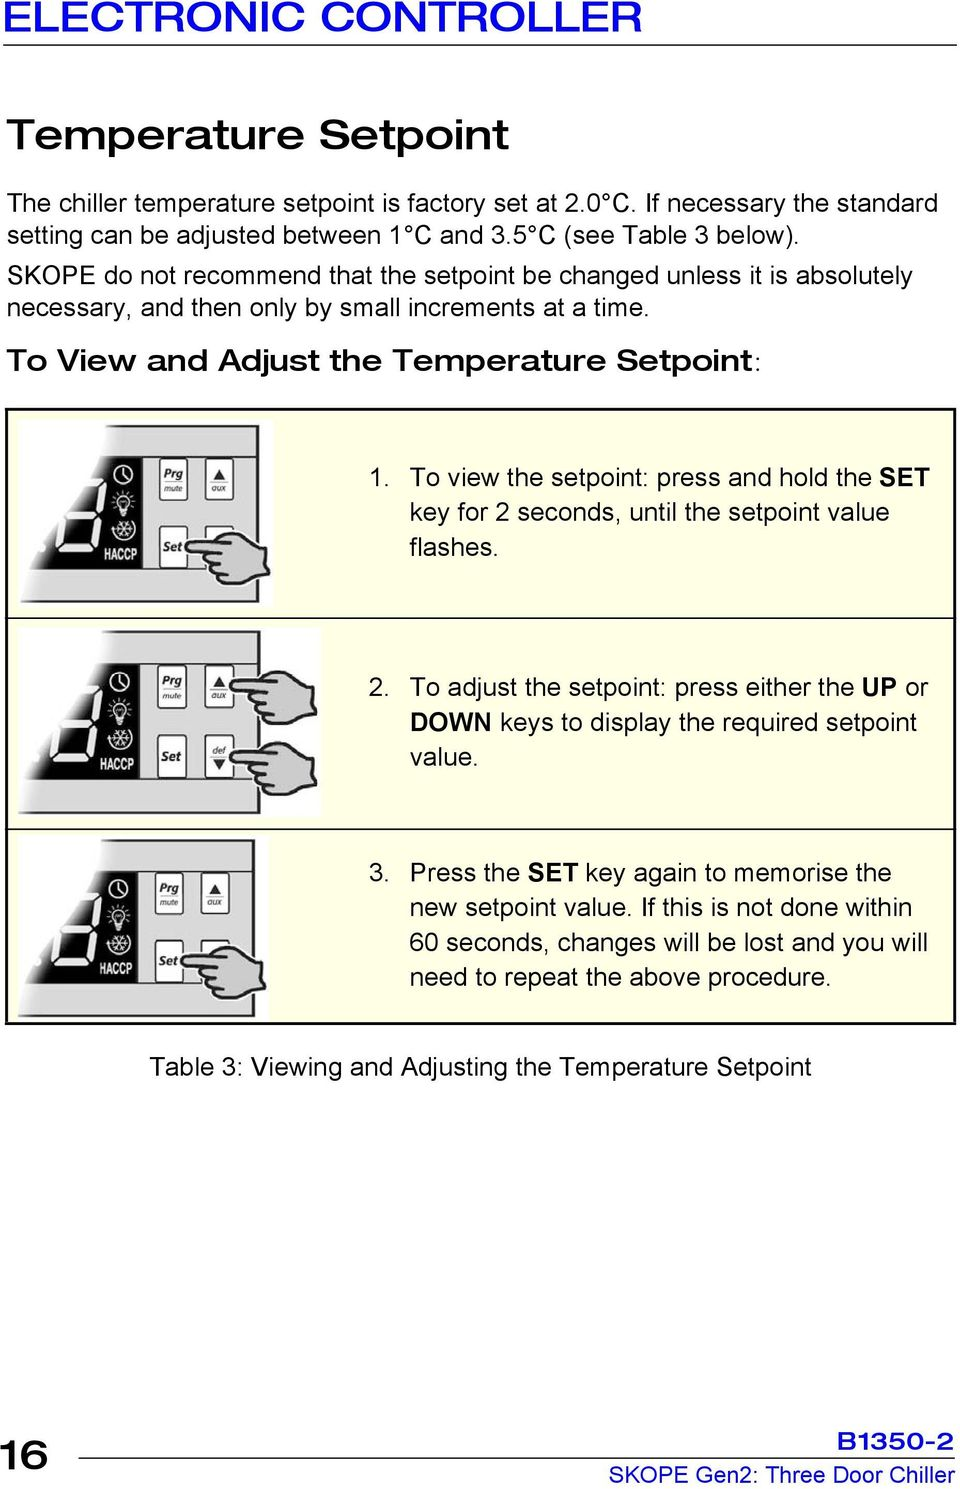 To view the setpoint: press and hold the SET key for 2 seconds, until the setpoint value flashes. 2. To adjust the setpoint: press either the UP or DOWN keys to display the required setpoint value. 3.